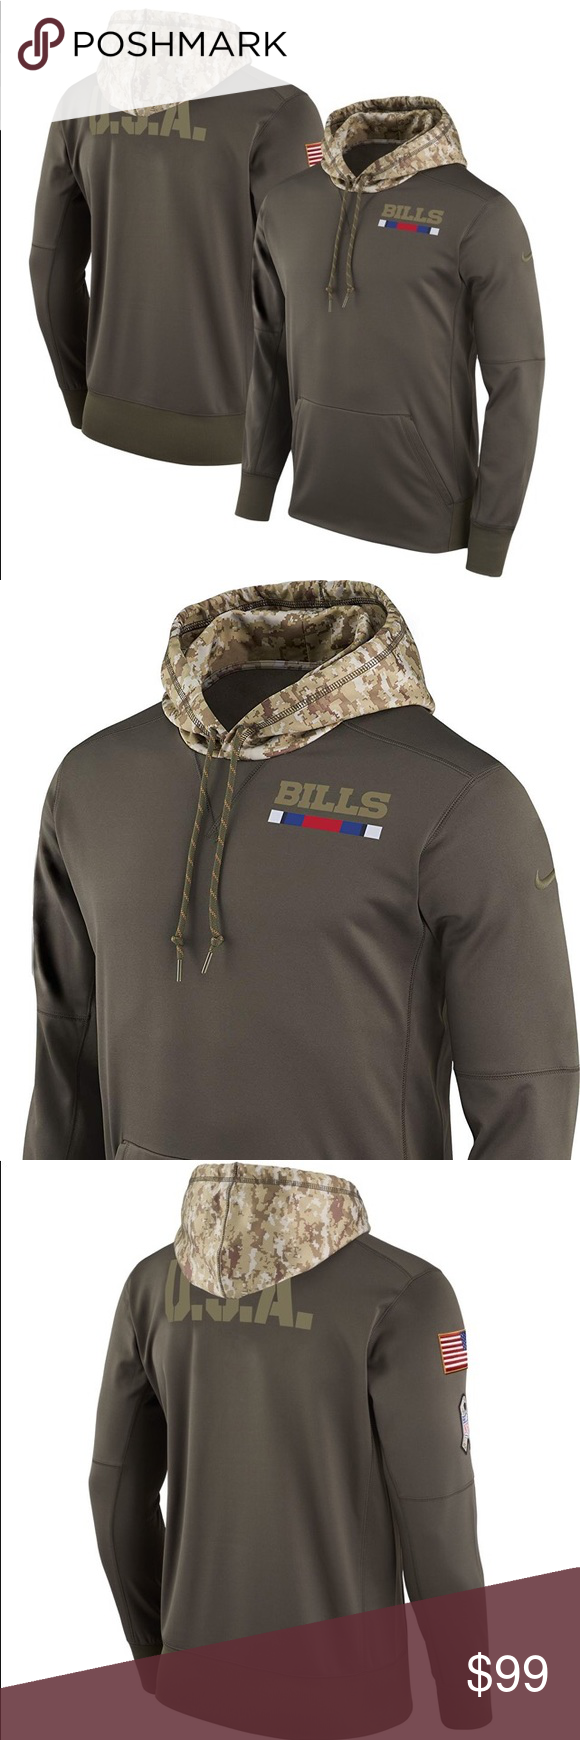 low priced 6e213 abef2 Nike Buffalo Bills Salute To Service Camo Hoodie Brand ...